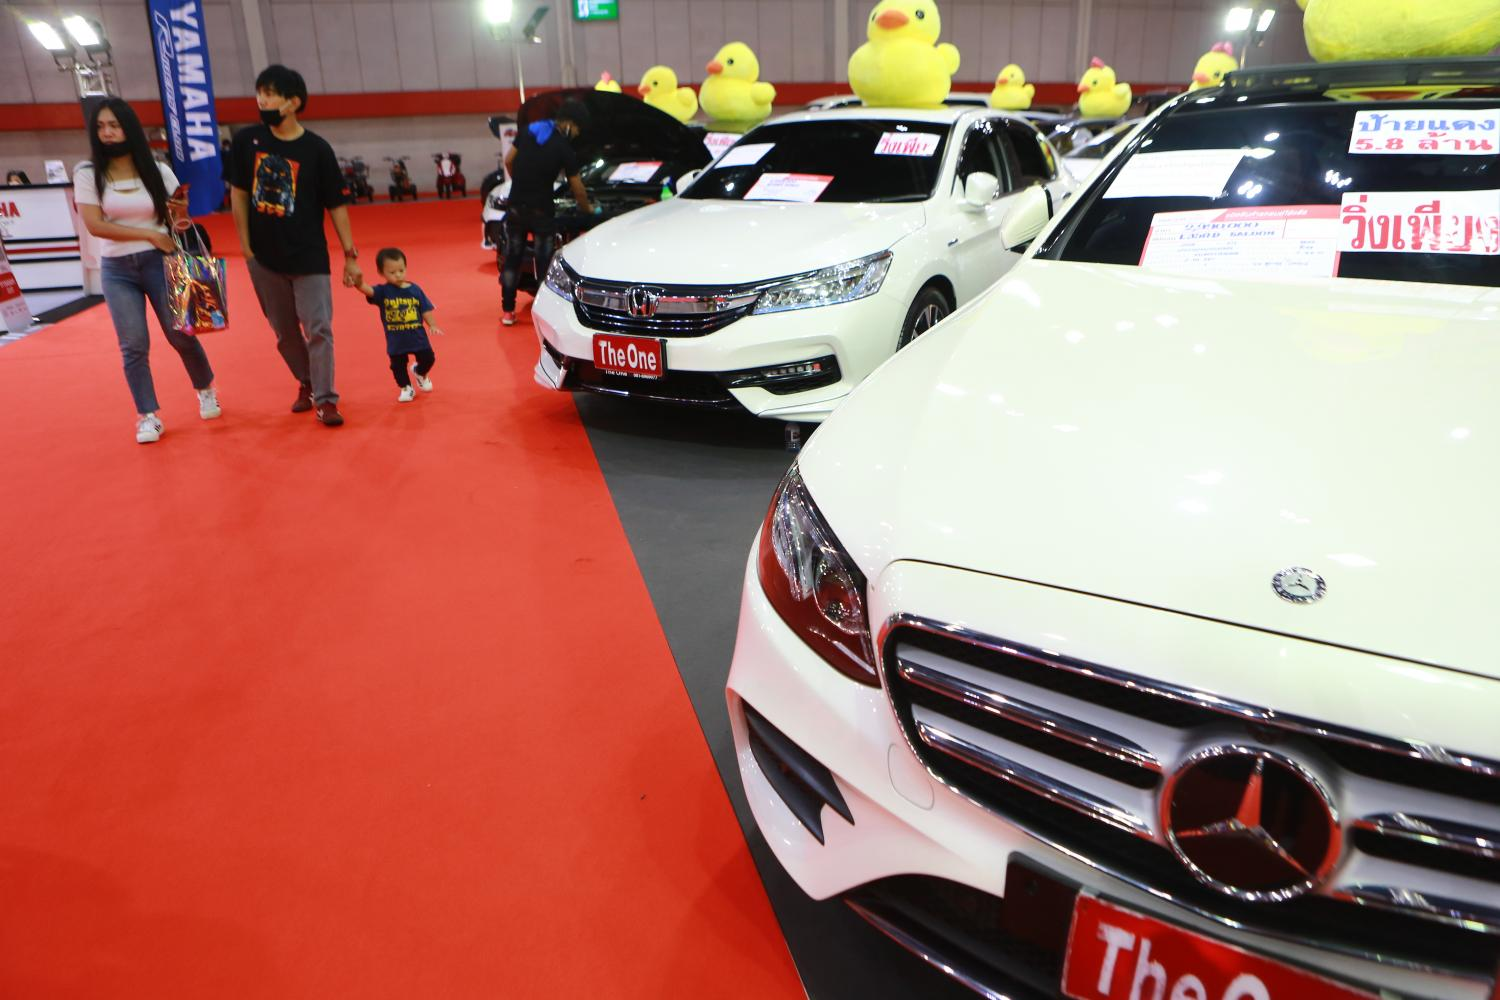 Auto loan competition ramped up